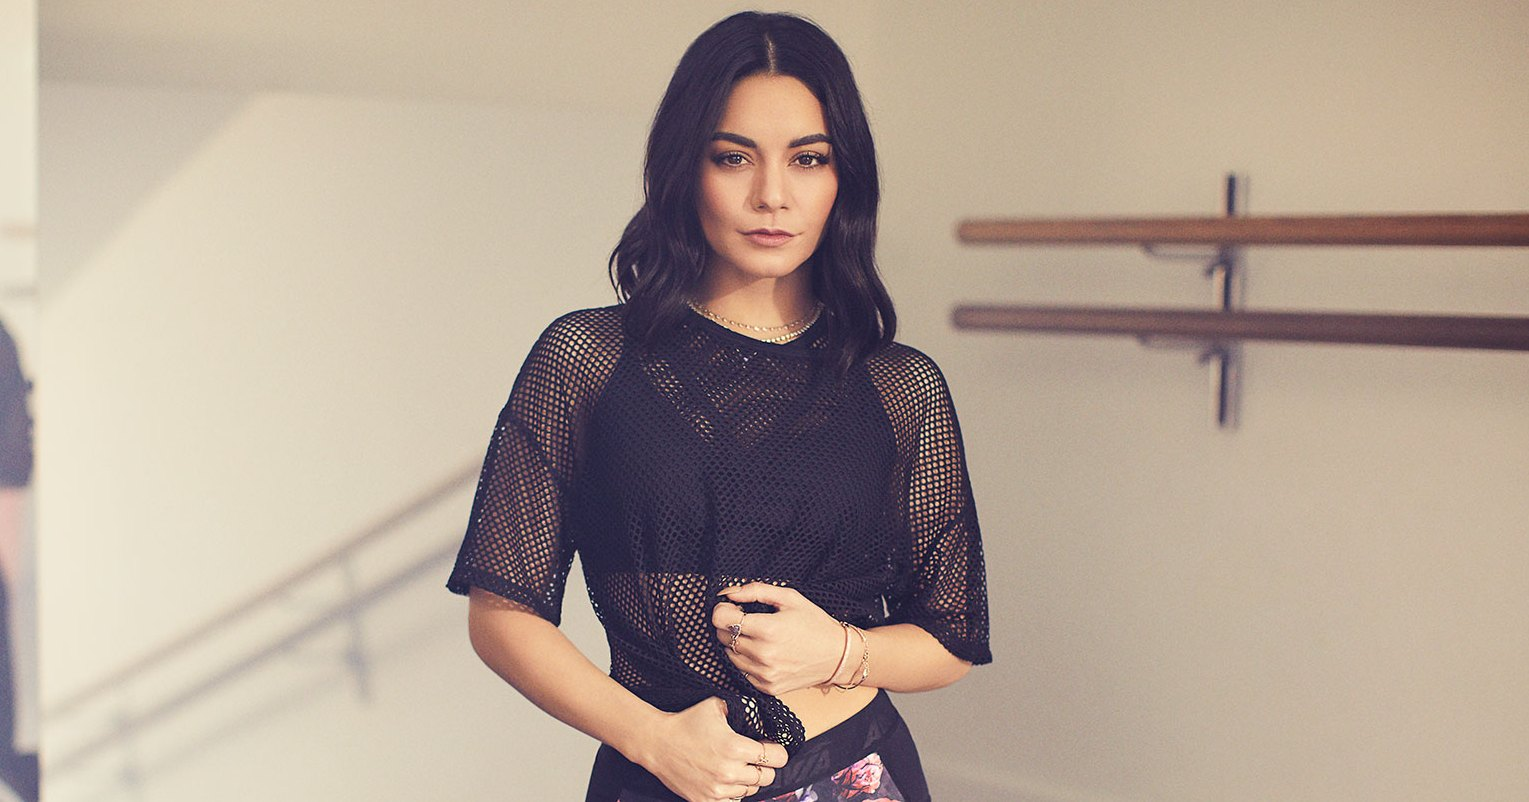 Vanessa Hudgens Teamed up With AVIA for a Super Stylish (and Affordable!) Activewear Collection